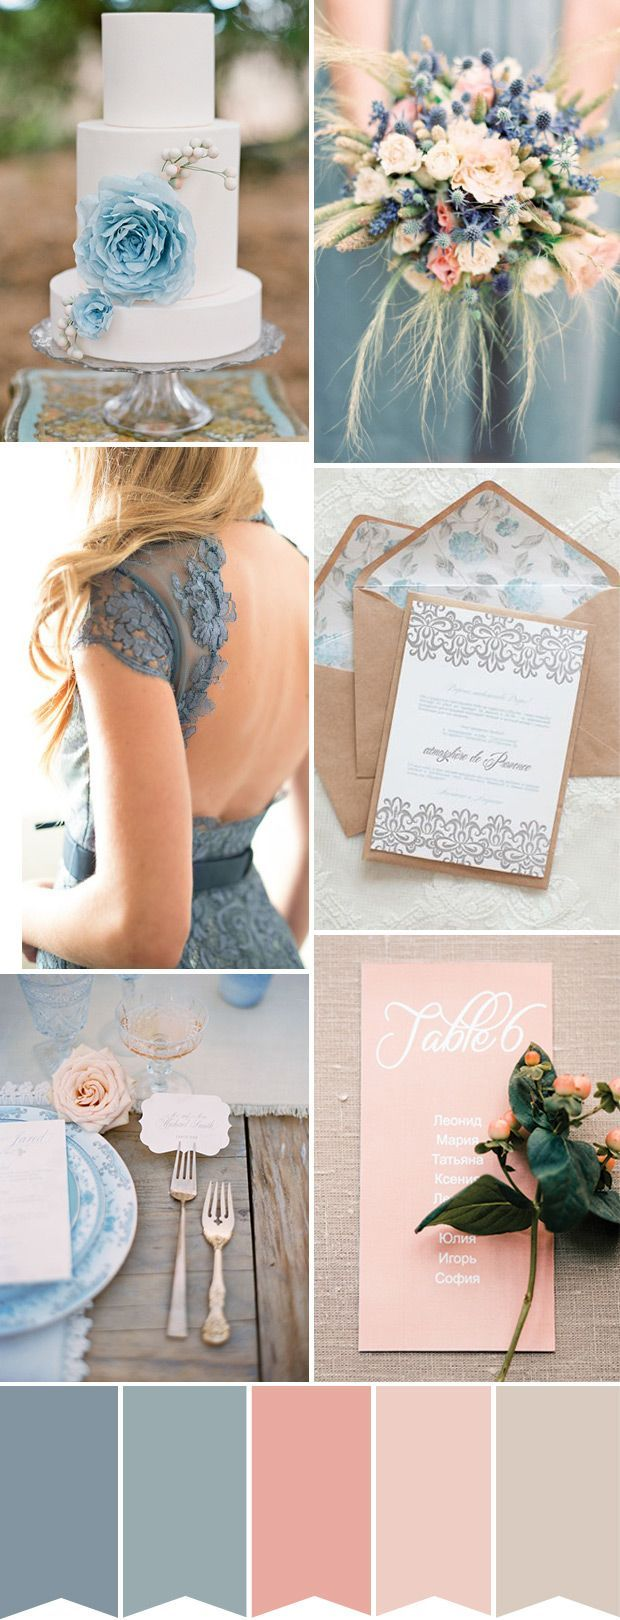 Perfect for a Summer Day - a Blue, Peach & Dusky Rose Pink Wedding Color